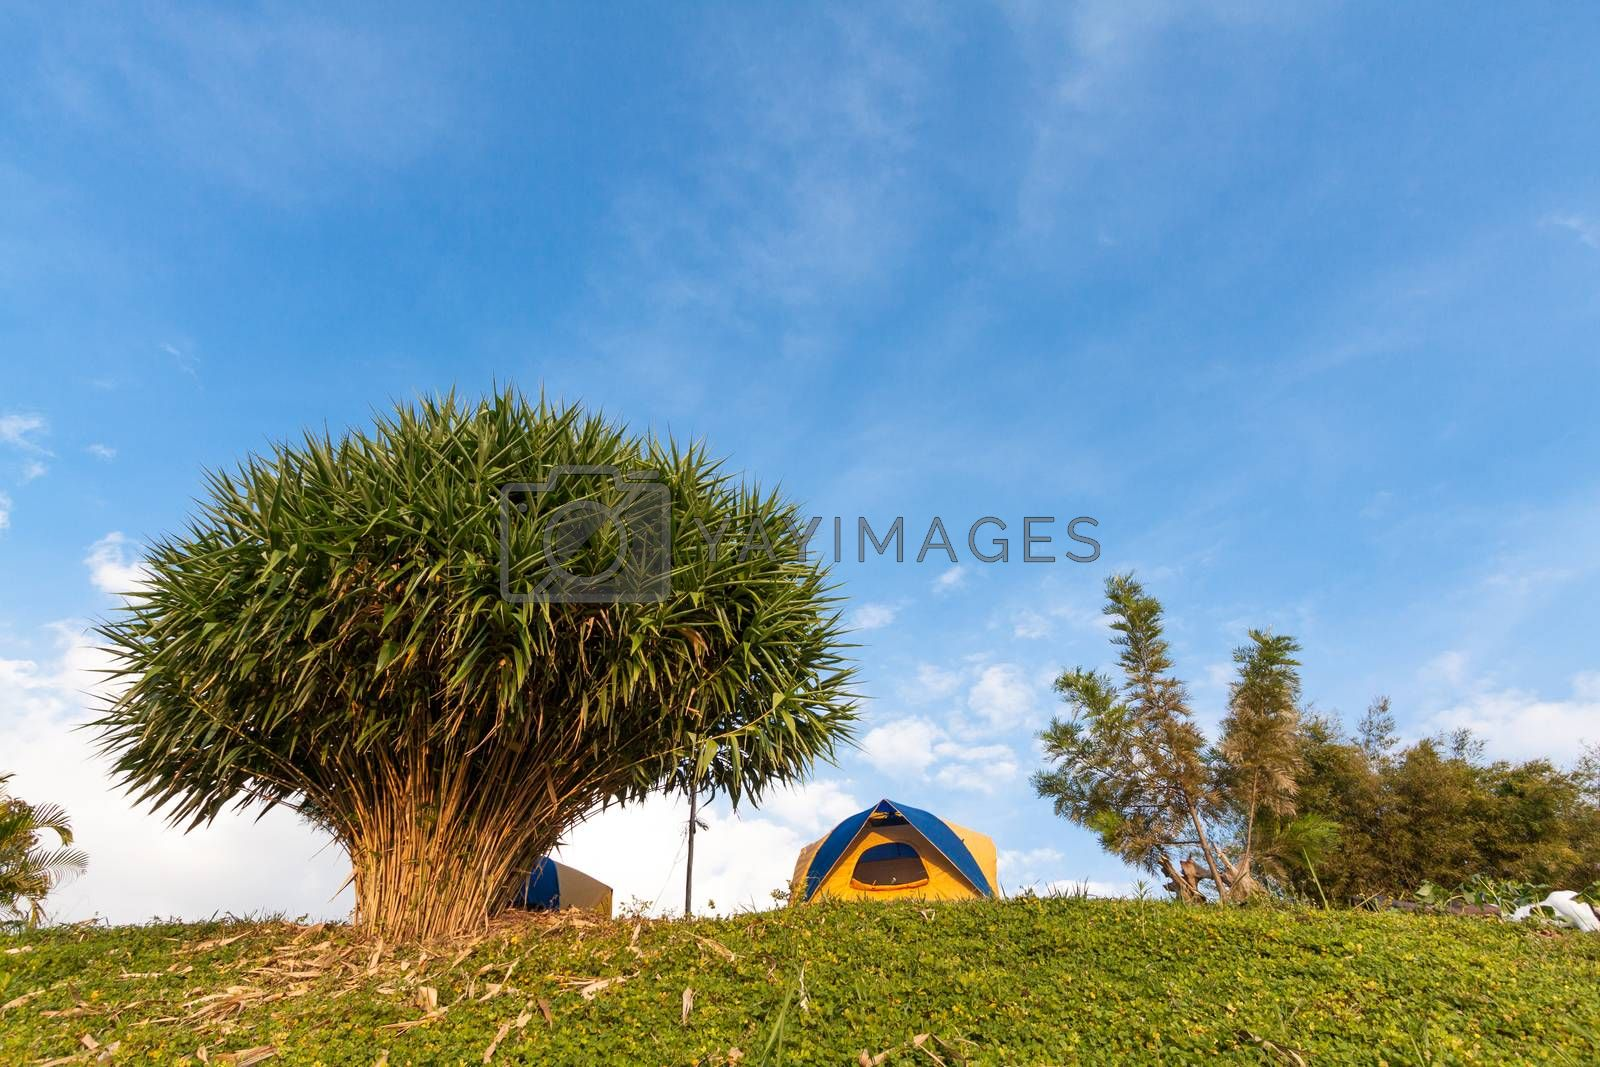 Royalty free image of tent on mountain in bule sky by kritsada1992